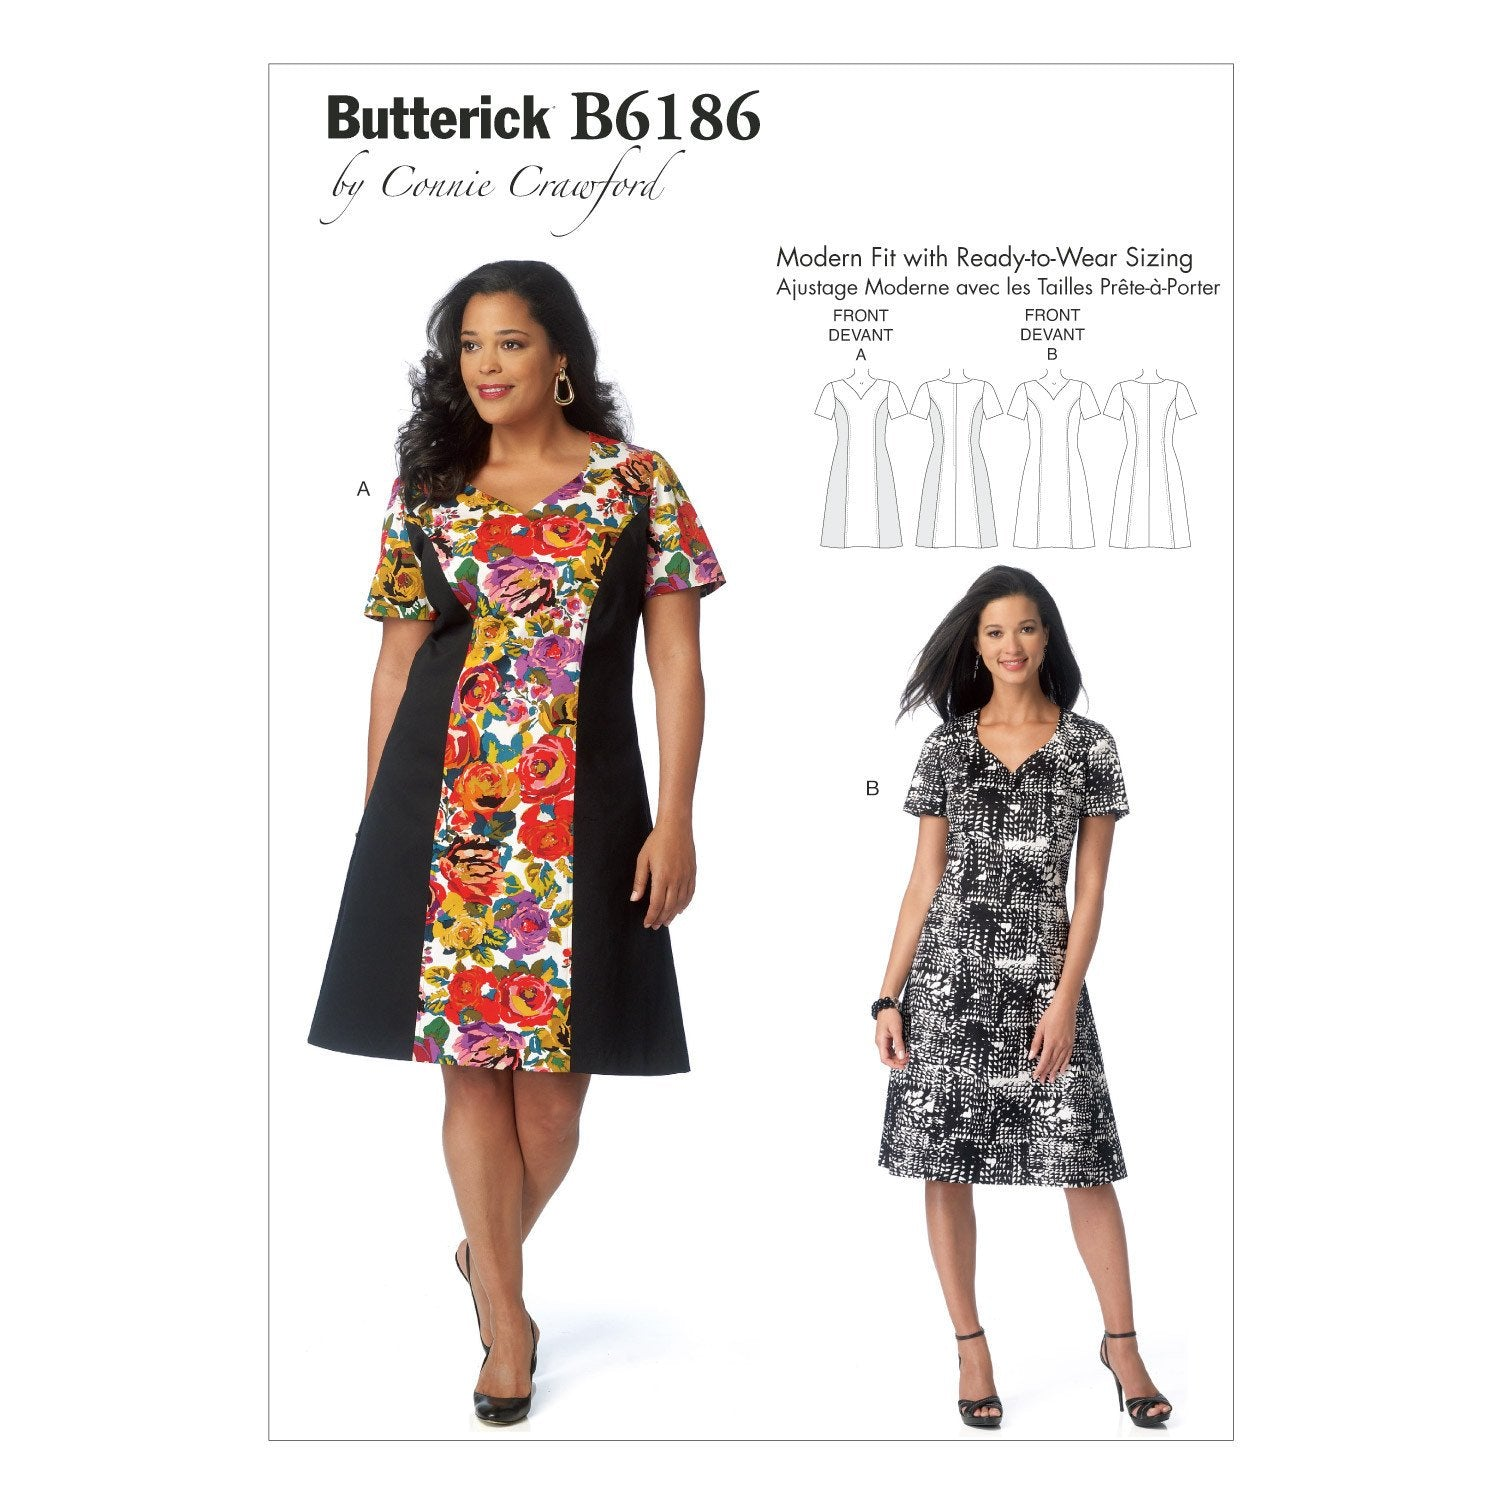 B6186 Misses' / Women's Dress